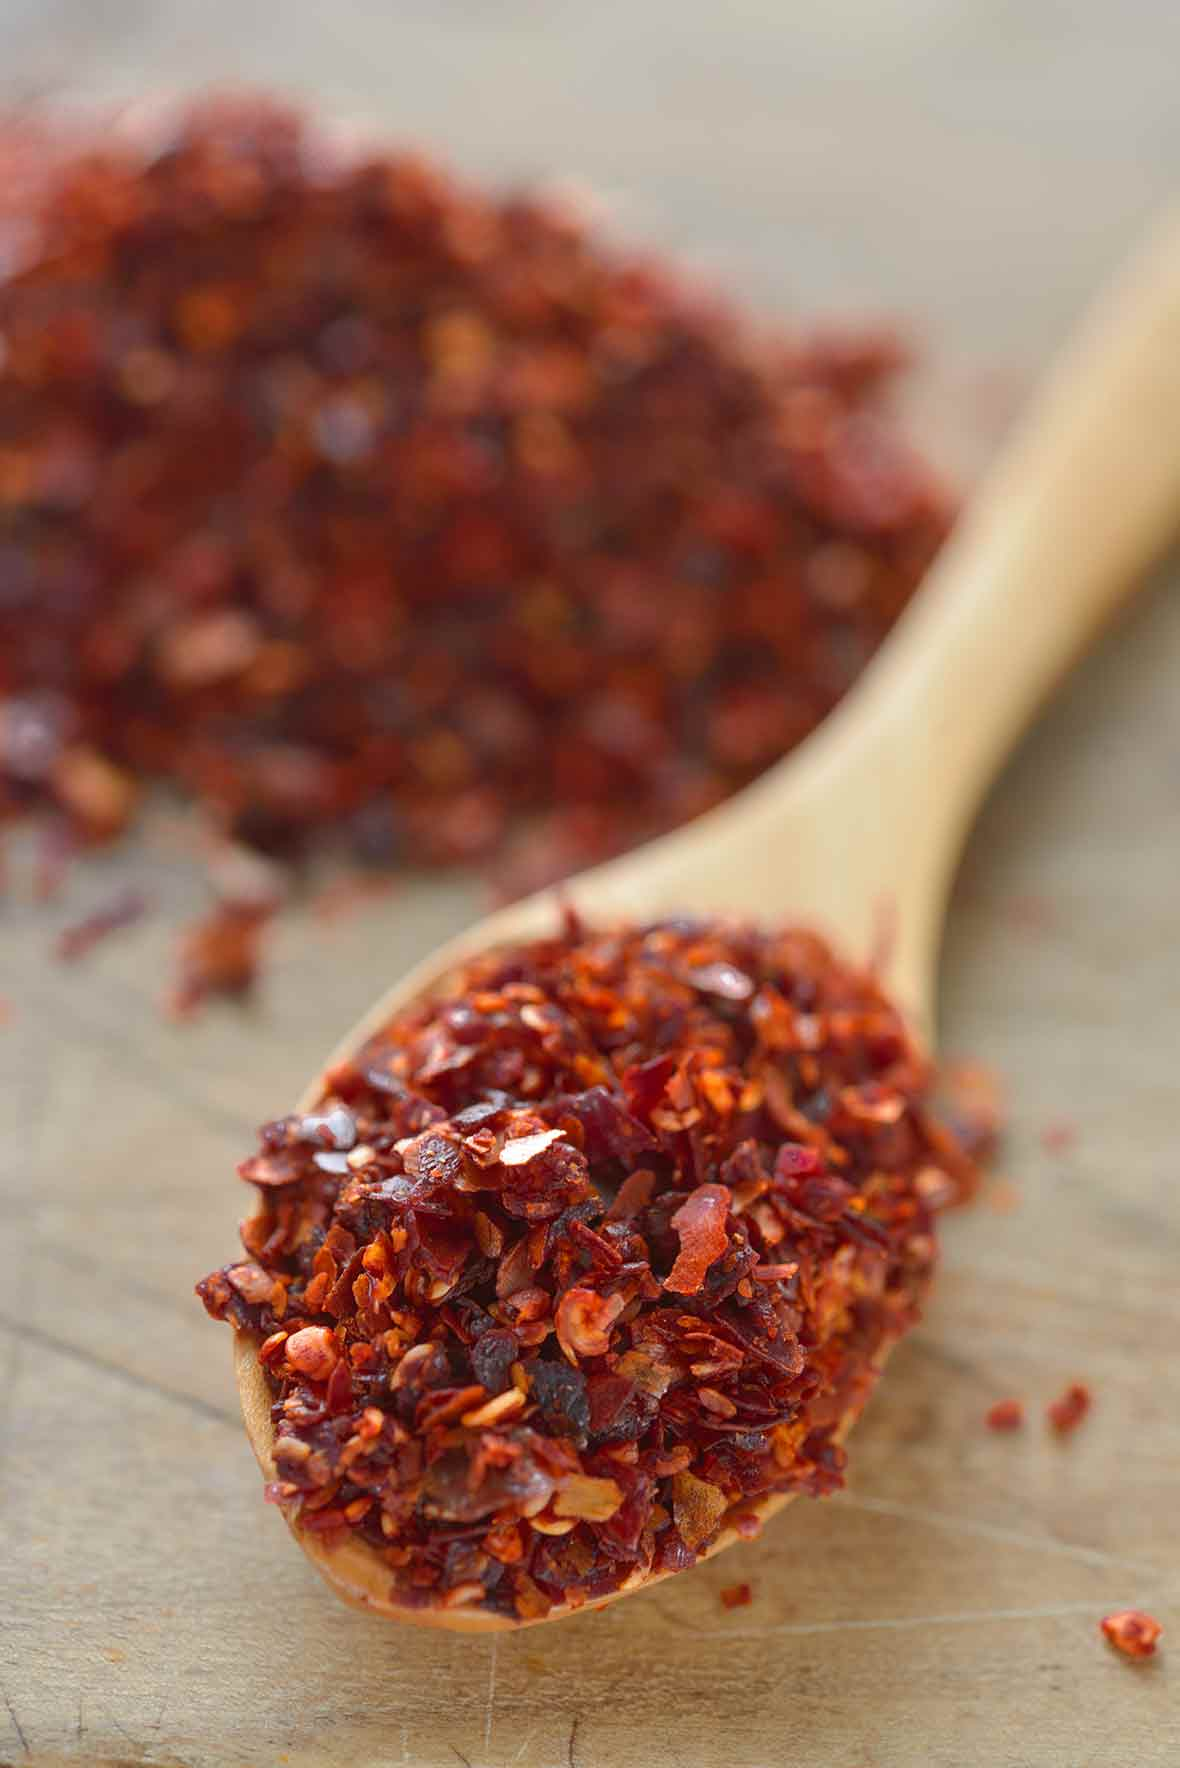 A small wooden spoon of Aleppo pepper, behind it a small pile of the pepper.